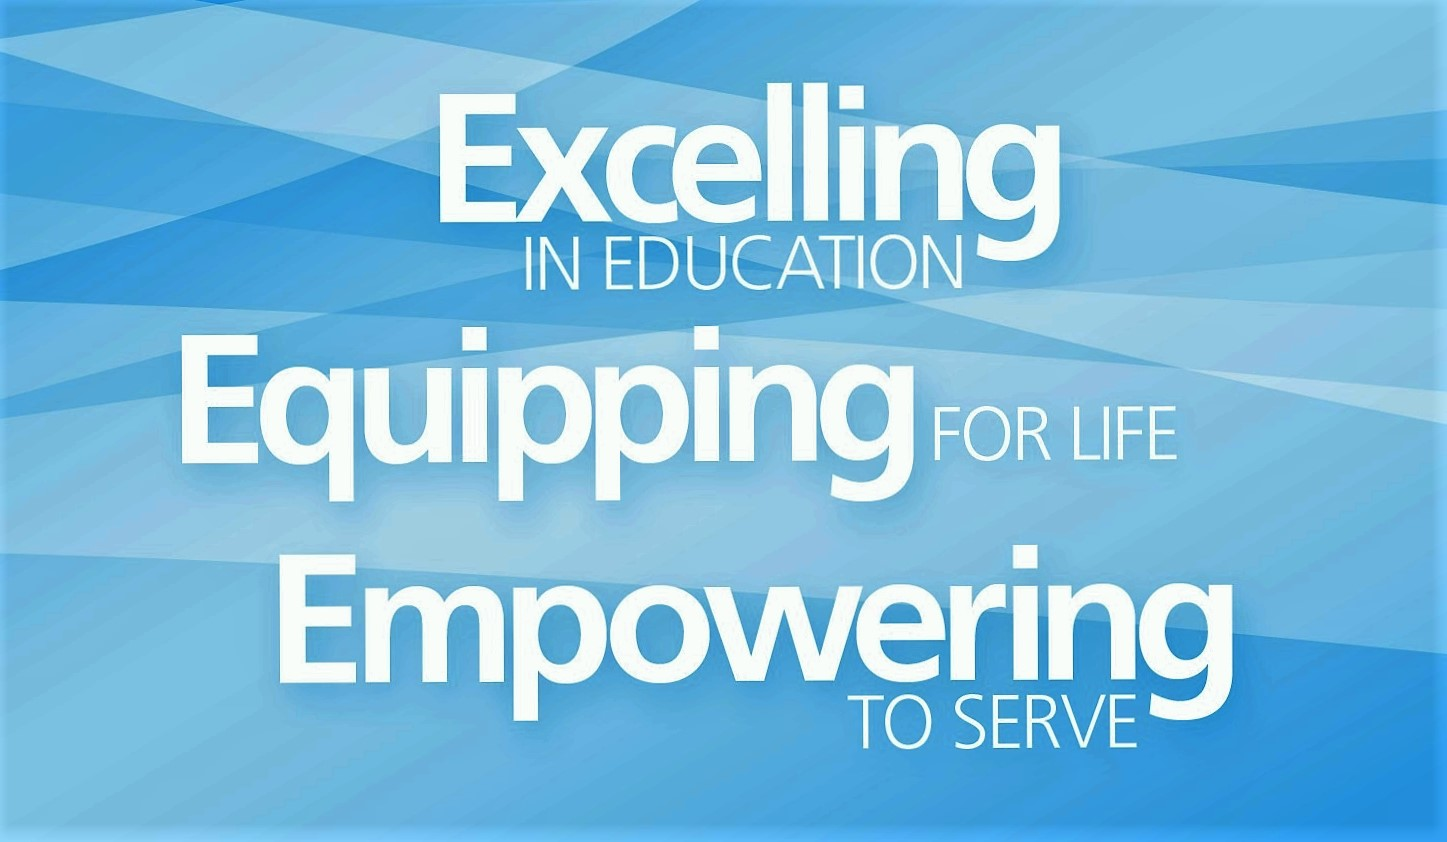 Excelling Equipping Empowering